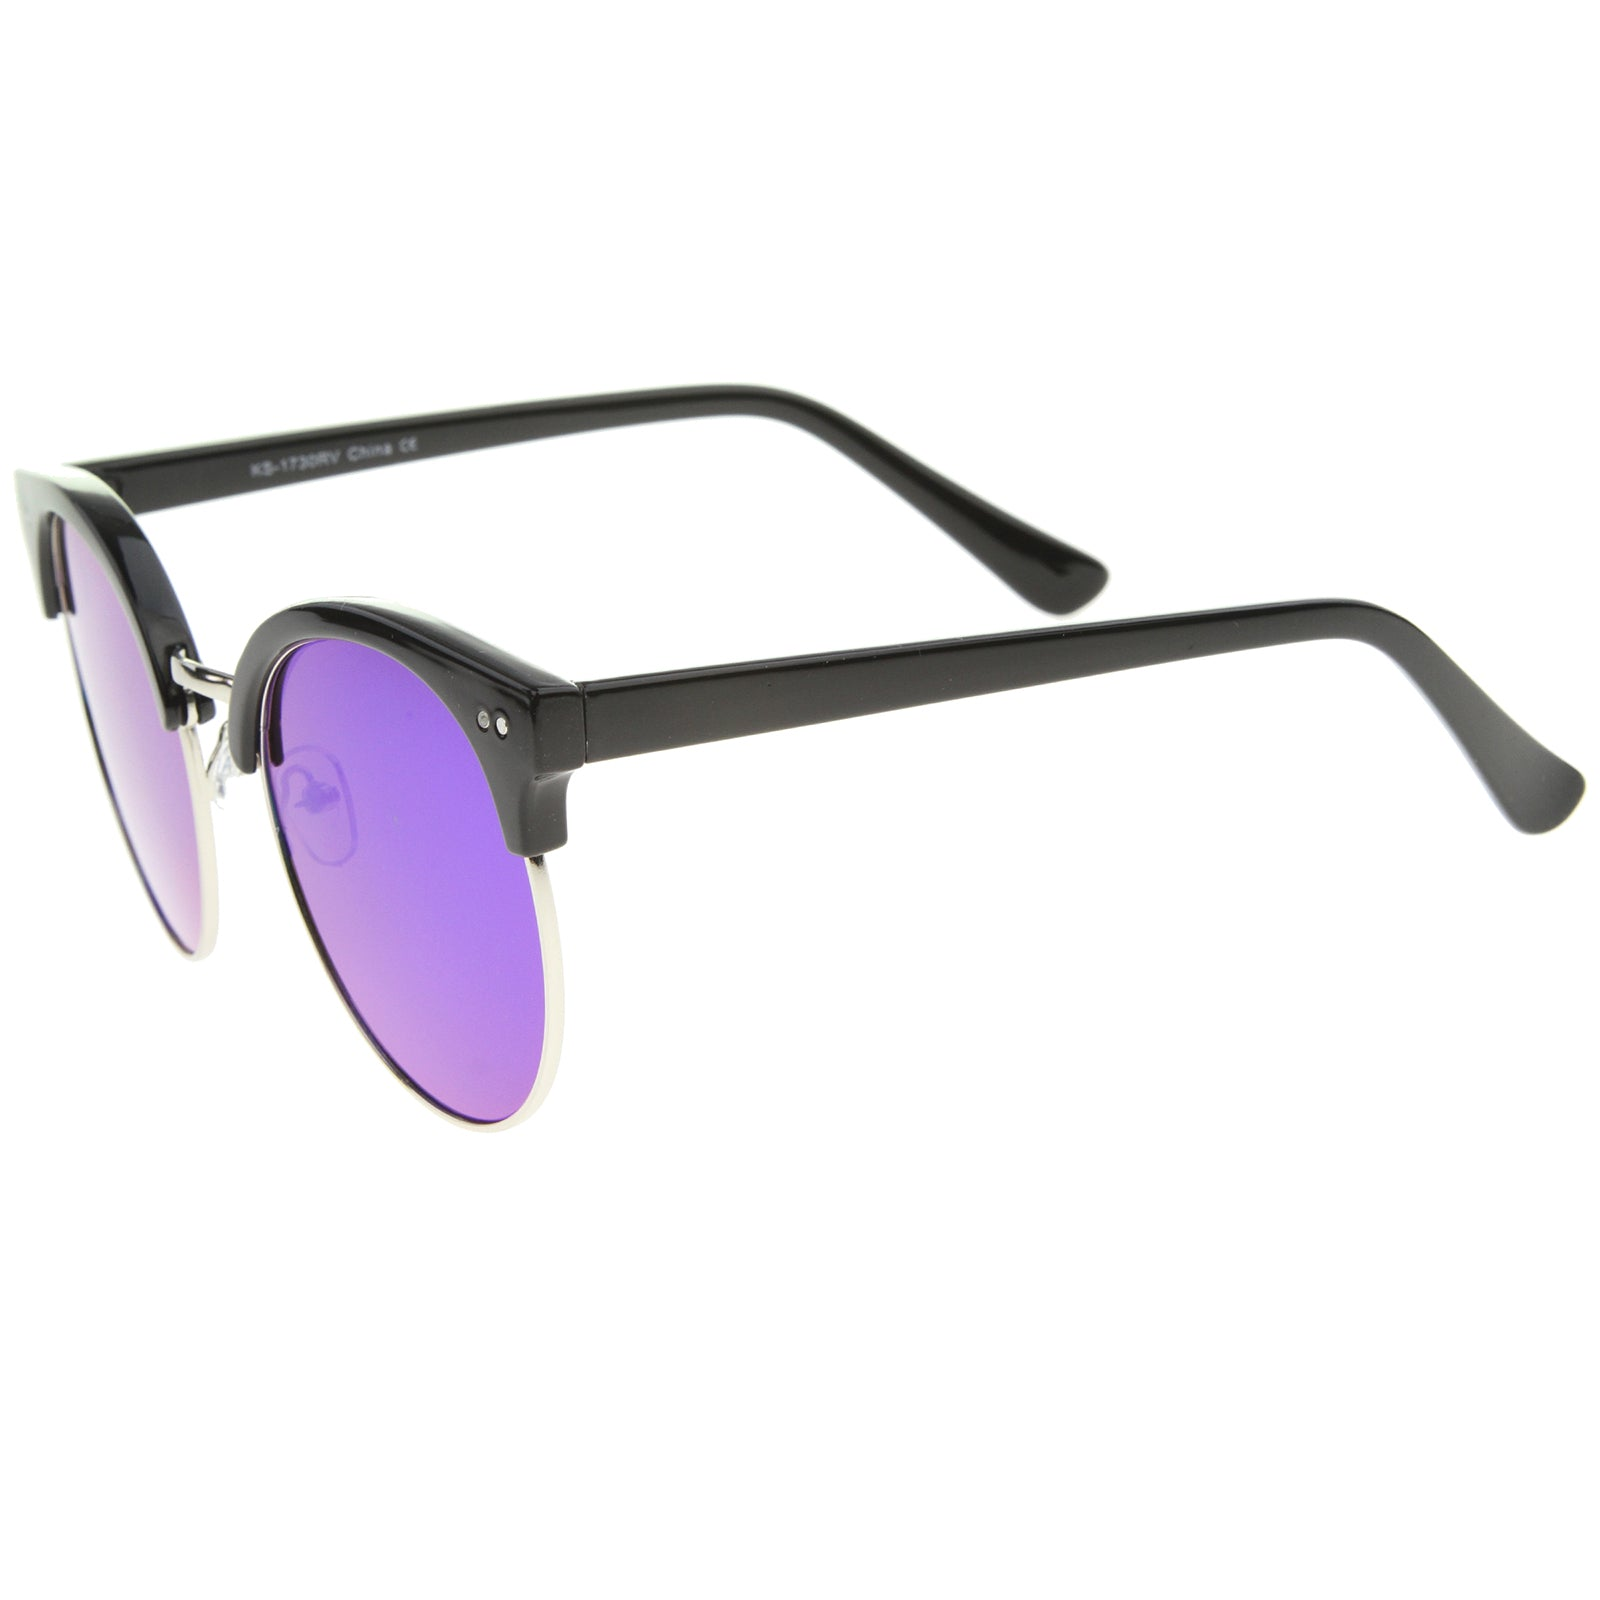 Womens Oversized Sunglasses With UV400 Protected Mirrored Lens - sunglass.la - 7